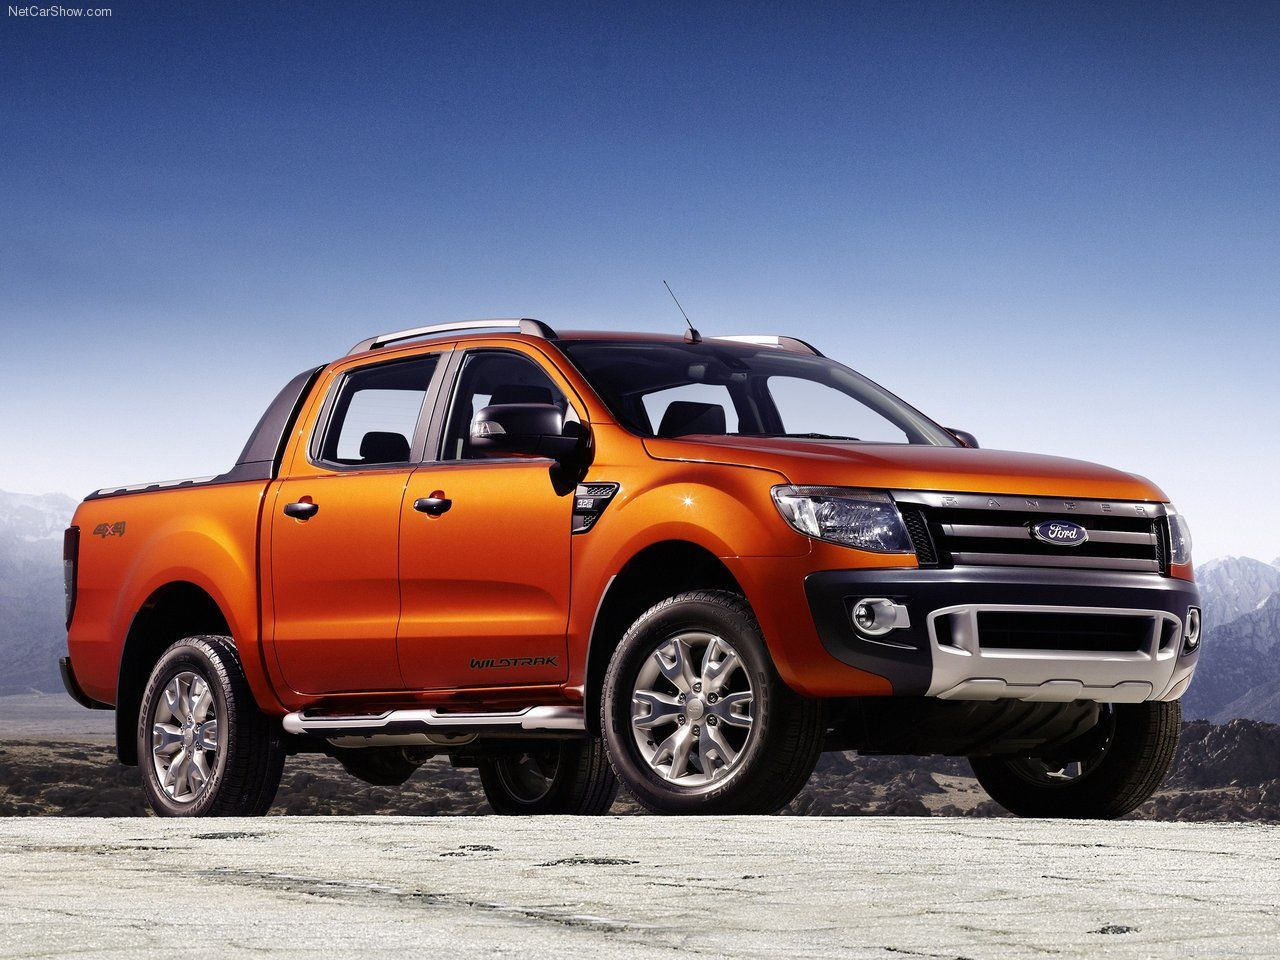 Ford has released images and details of the 2012 ford ranger wildtrak ahead of its world premiere at the geneva motor show tonight